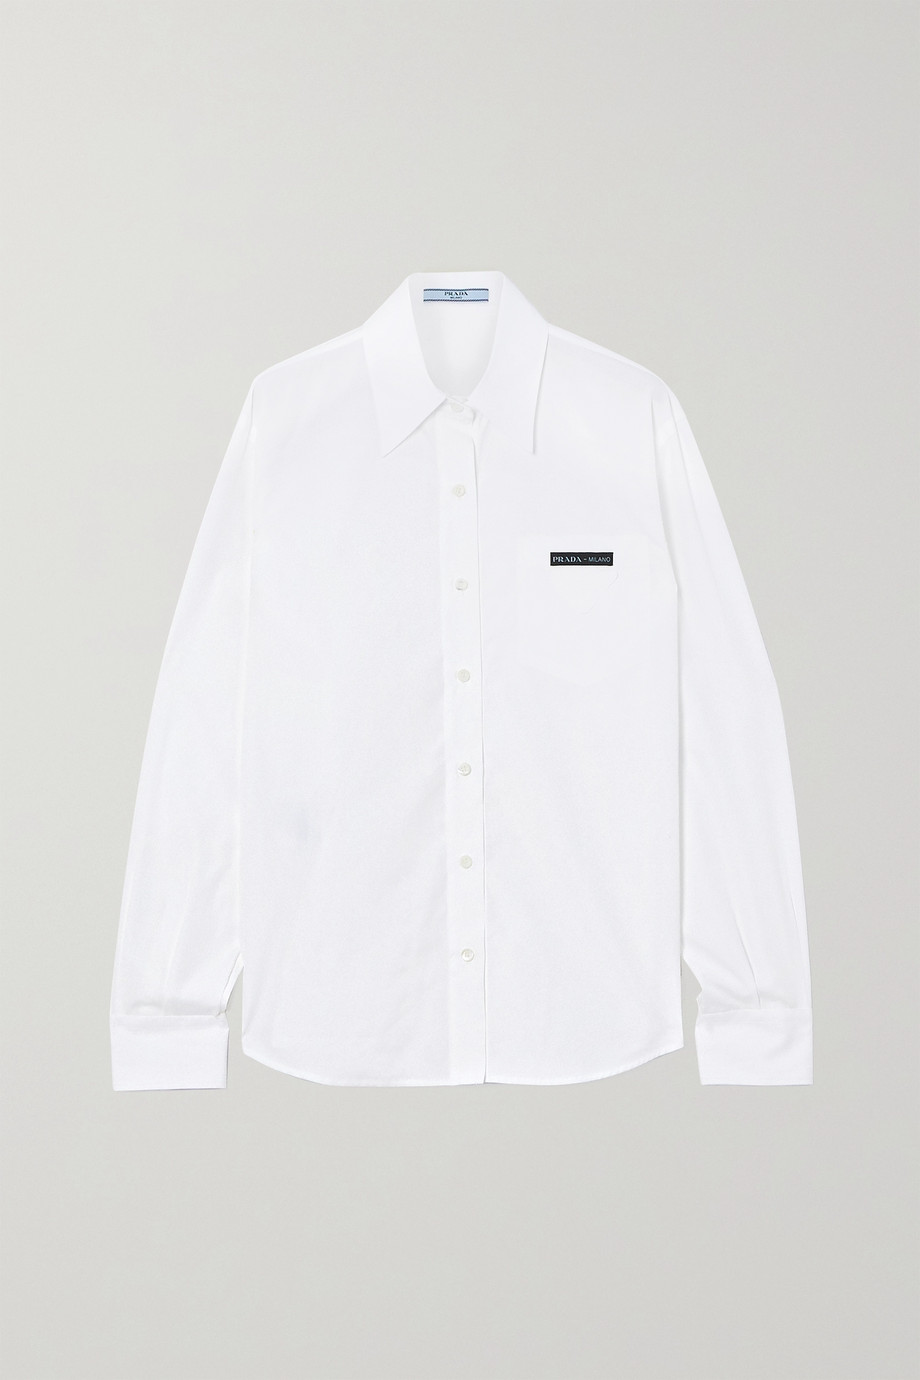 Prada Appliquéd cotton-poplin shirt